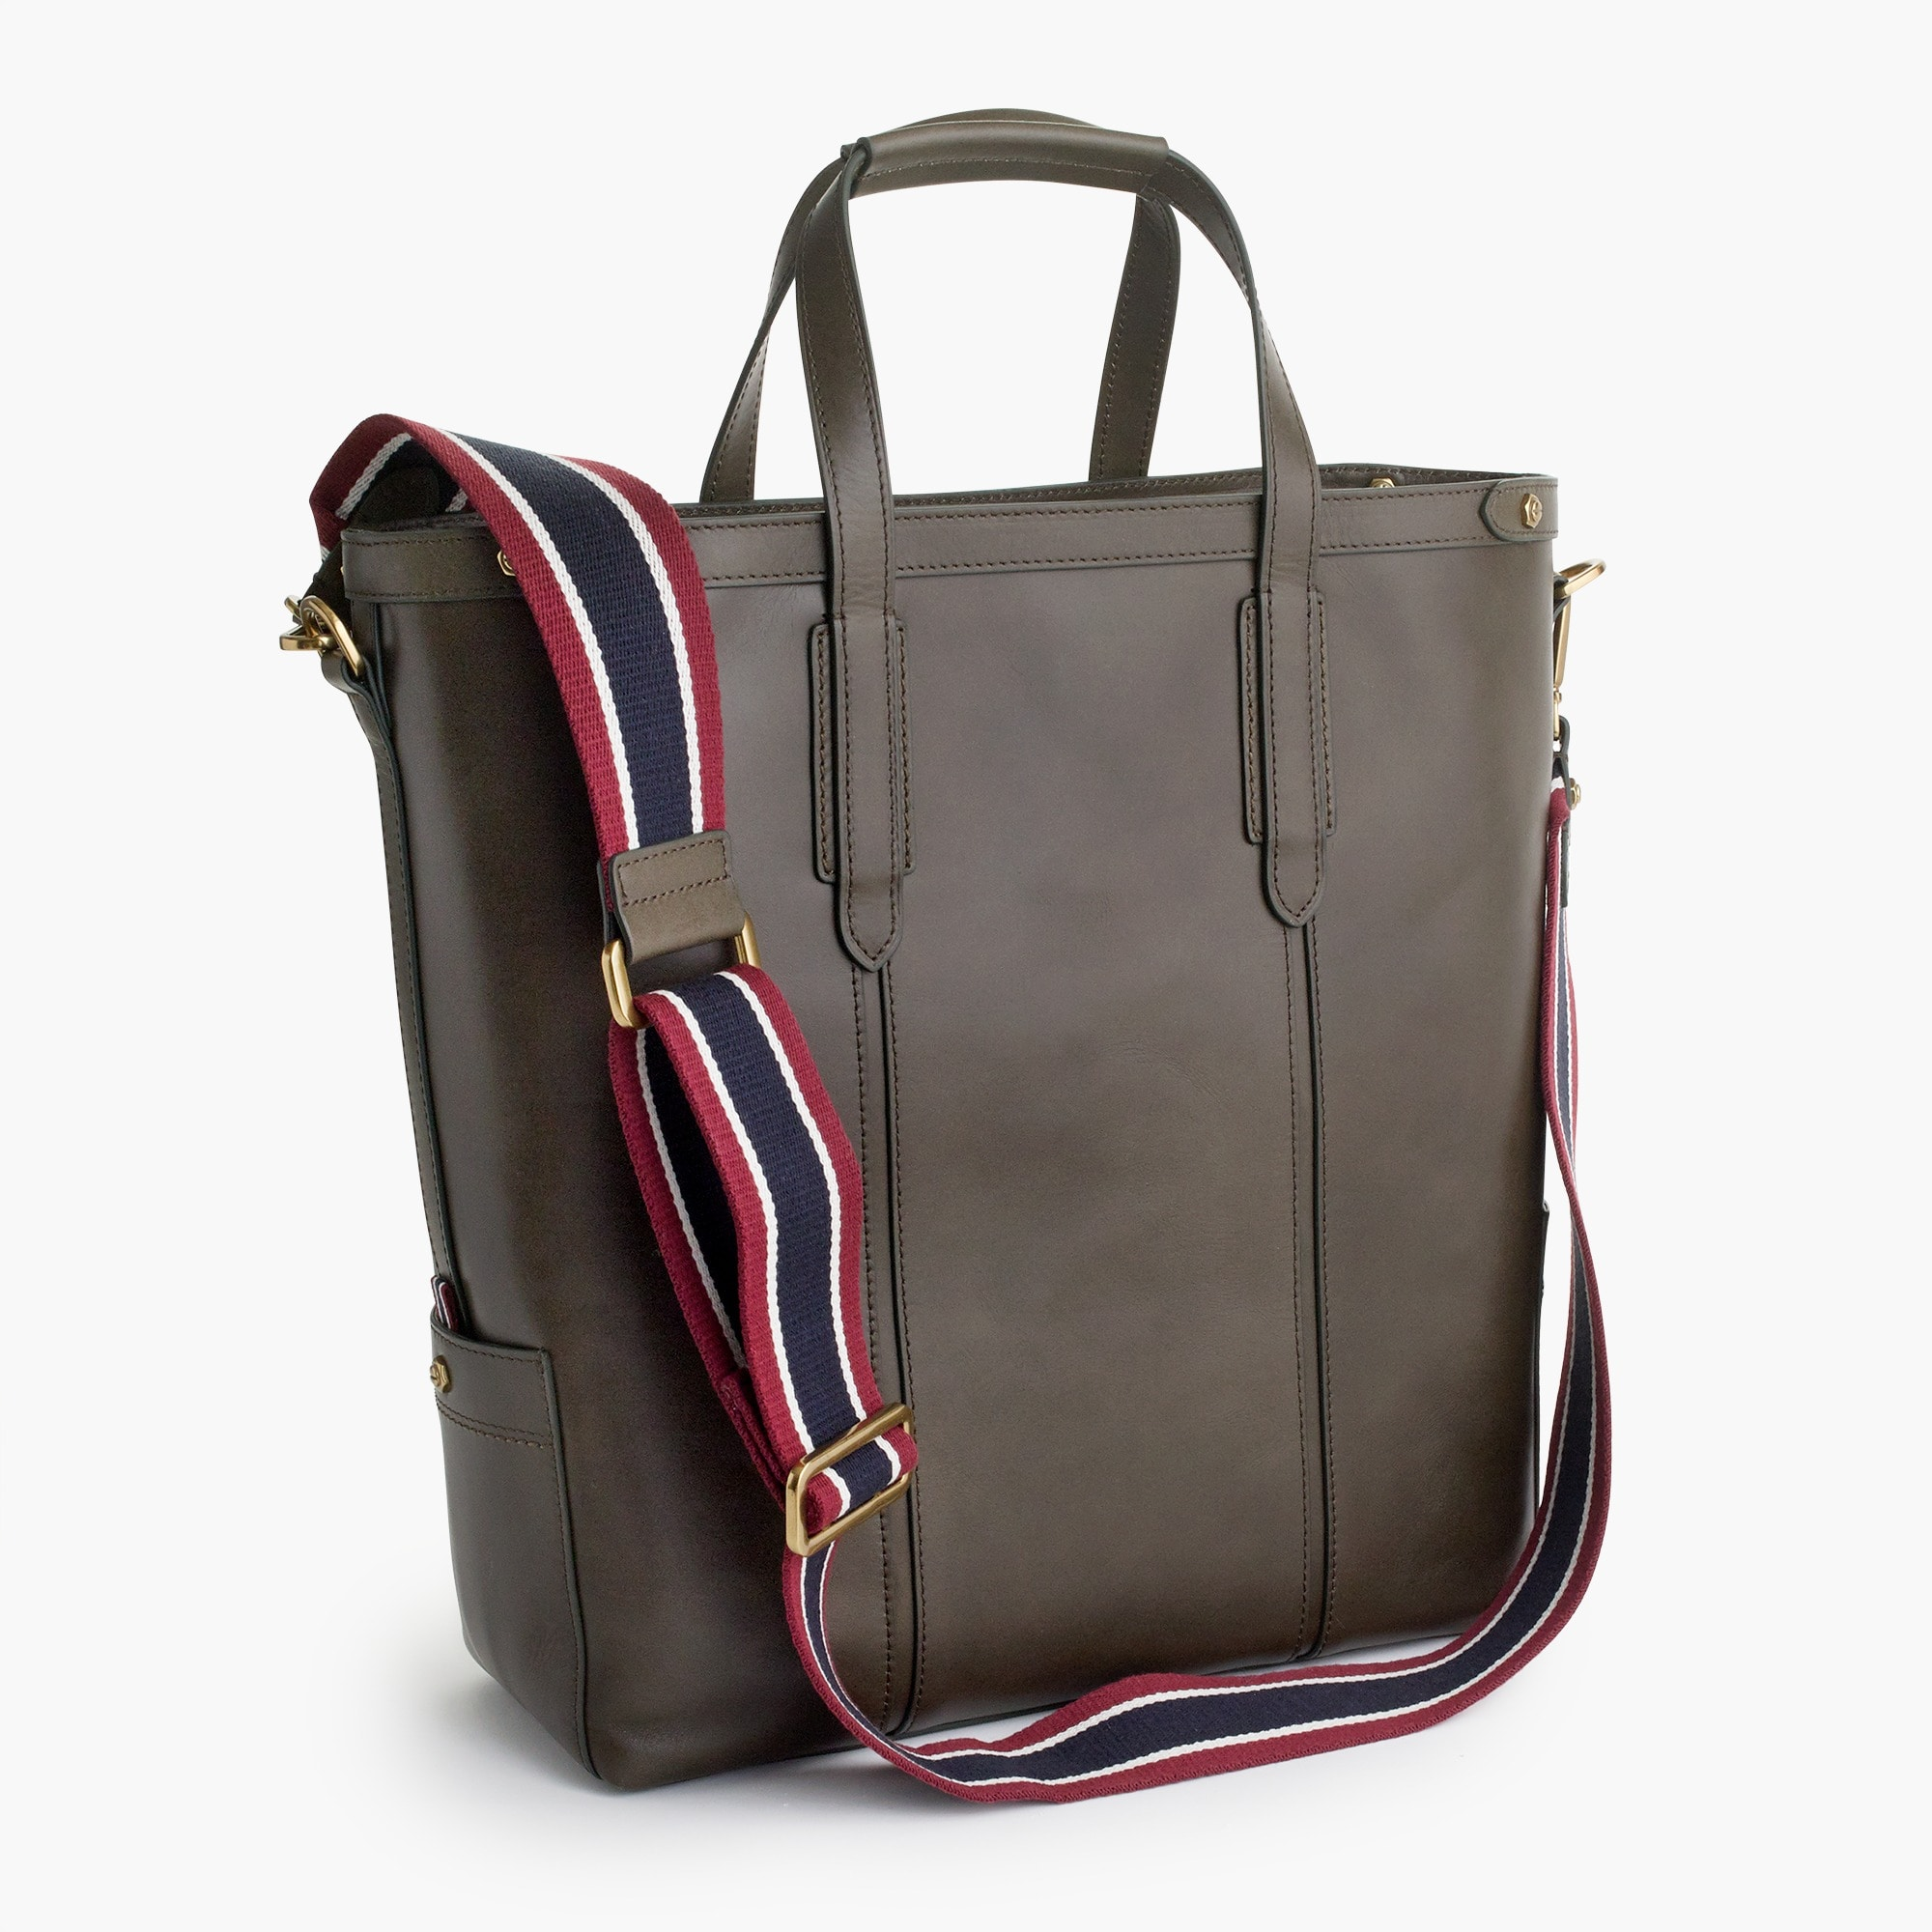 mens Oar Stripe leather tote bag